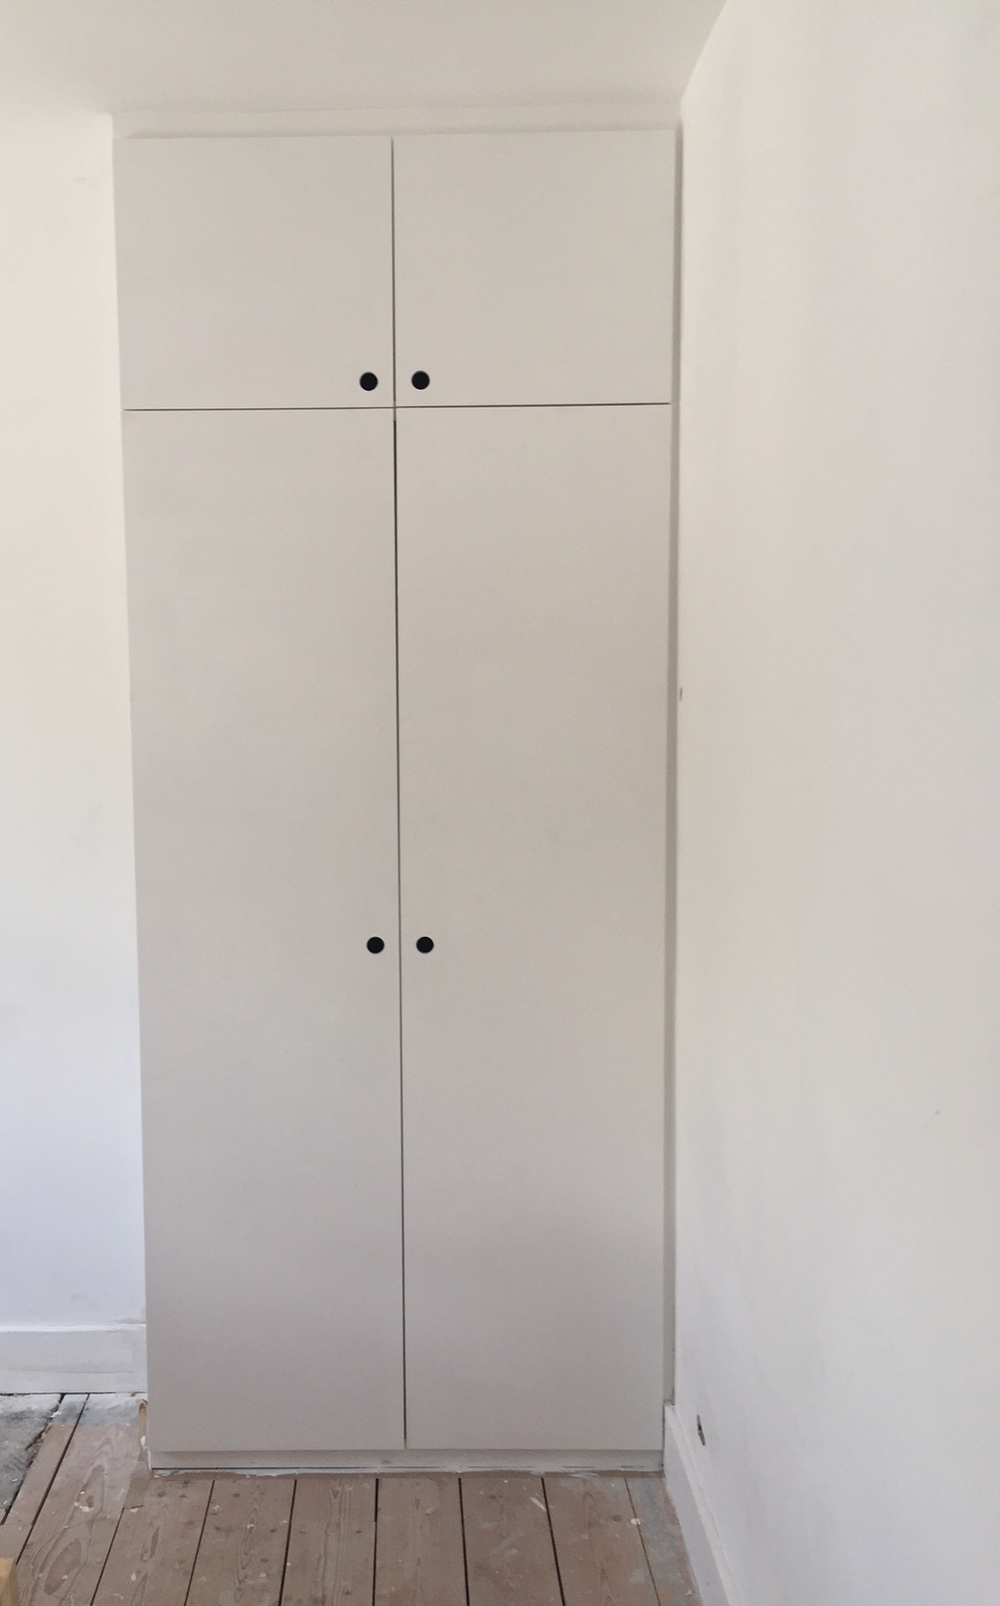 F I T T E D  W A R D R O B E - This seamless wardrobe was part of a pair that were fitted into the bedrooms alcoves. They ran floor to ceiling making the most out of the space.